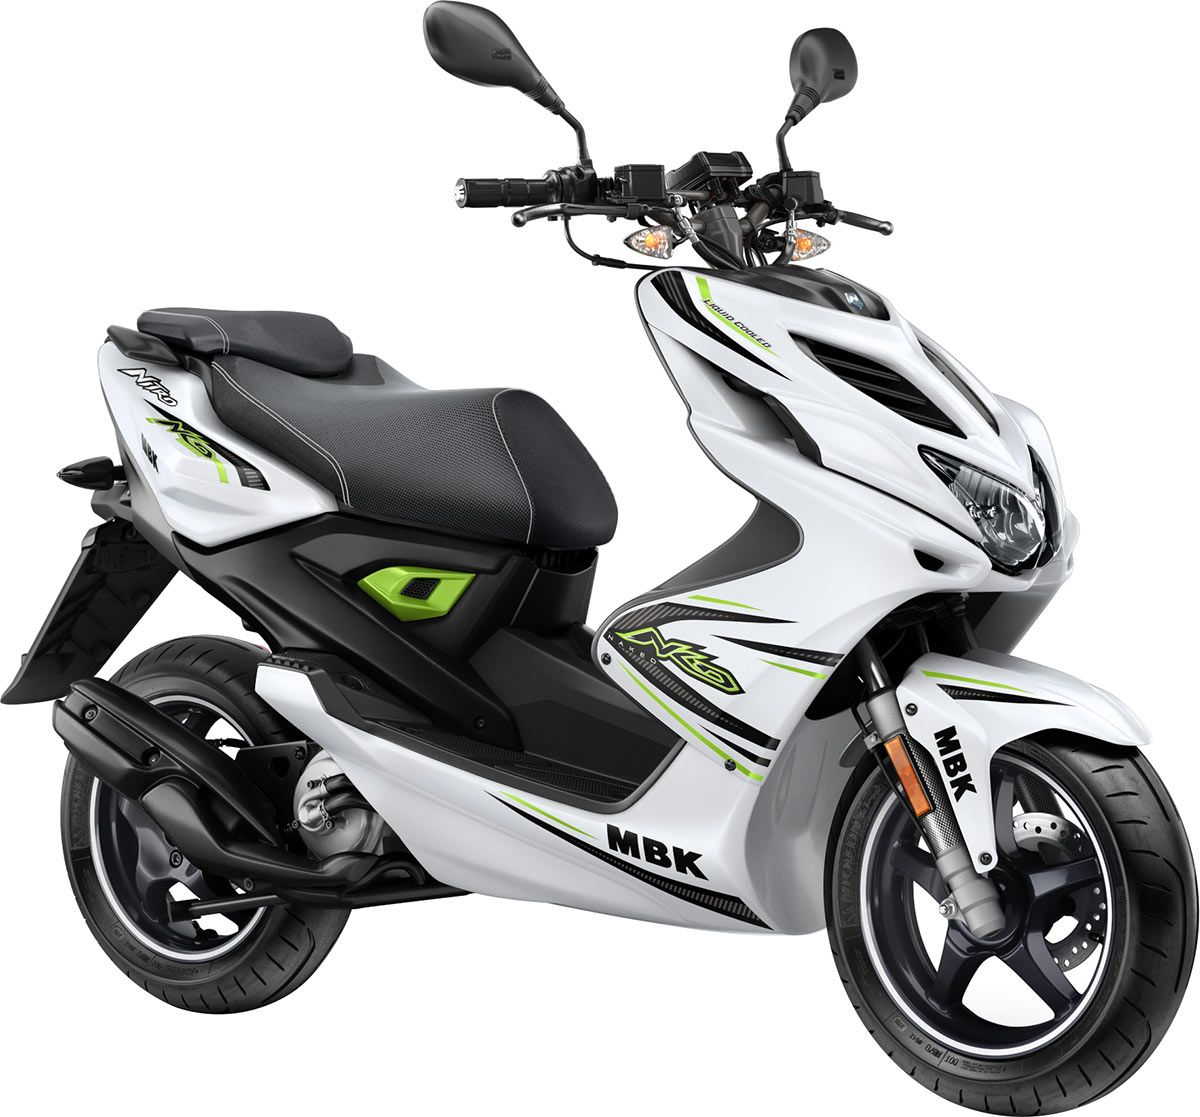 scooter 50 on pinterest scooters news and racing. Black Bedroom Furniture Sets. Home Design Ideas